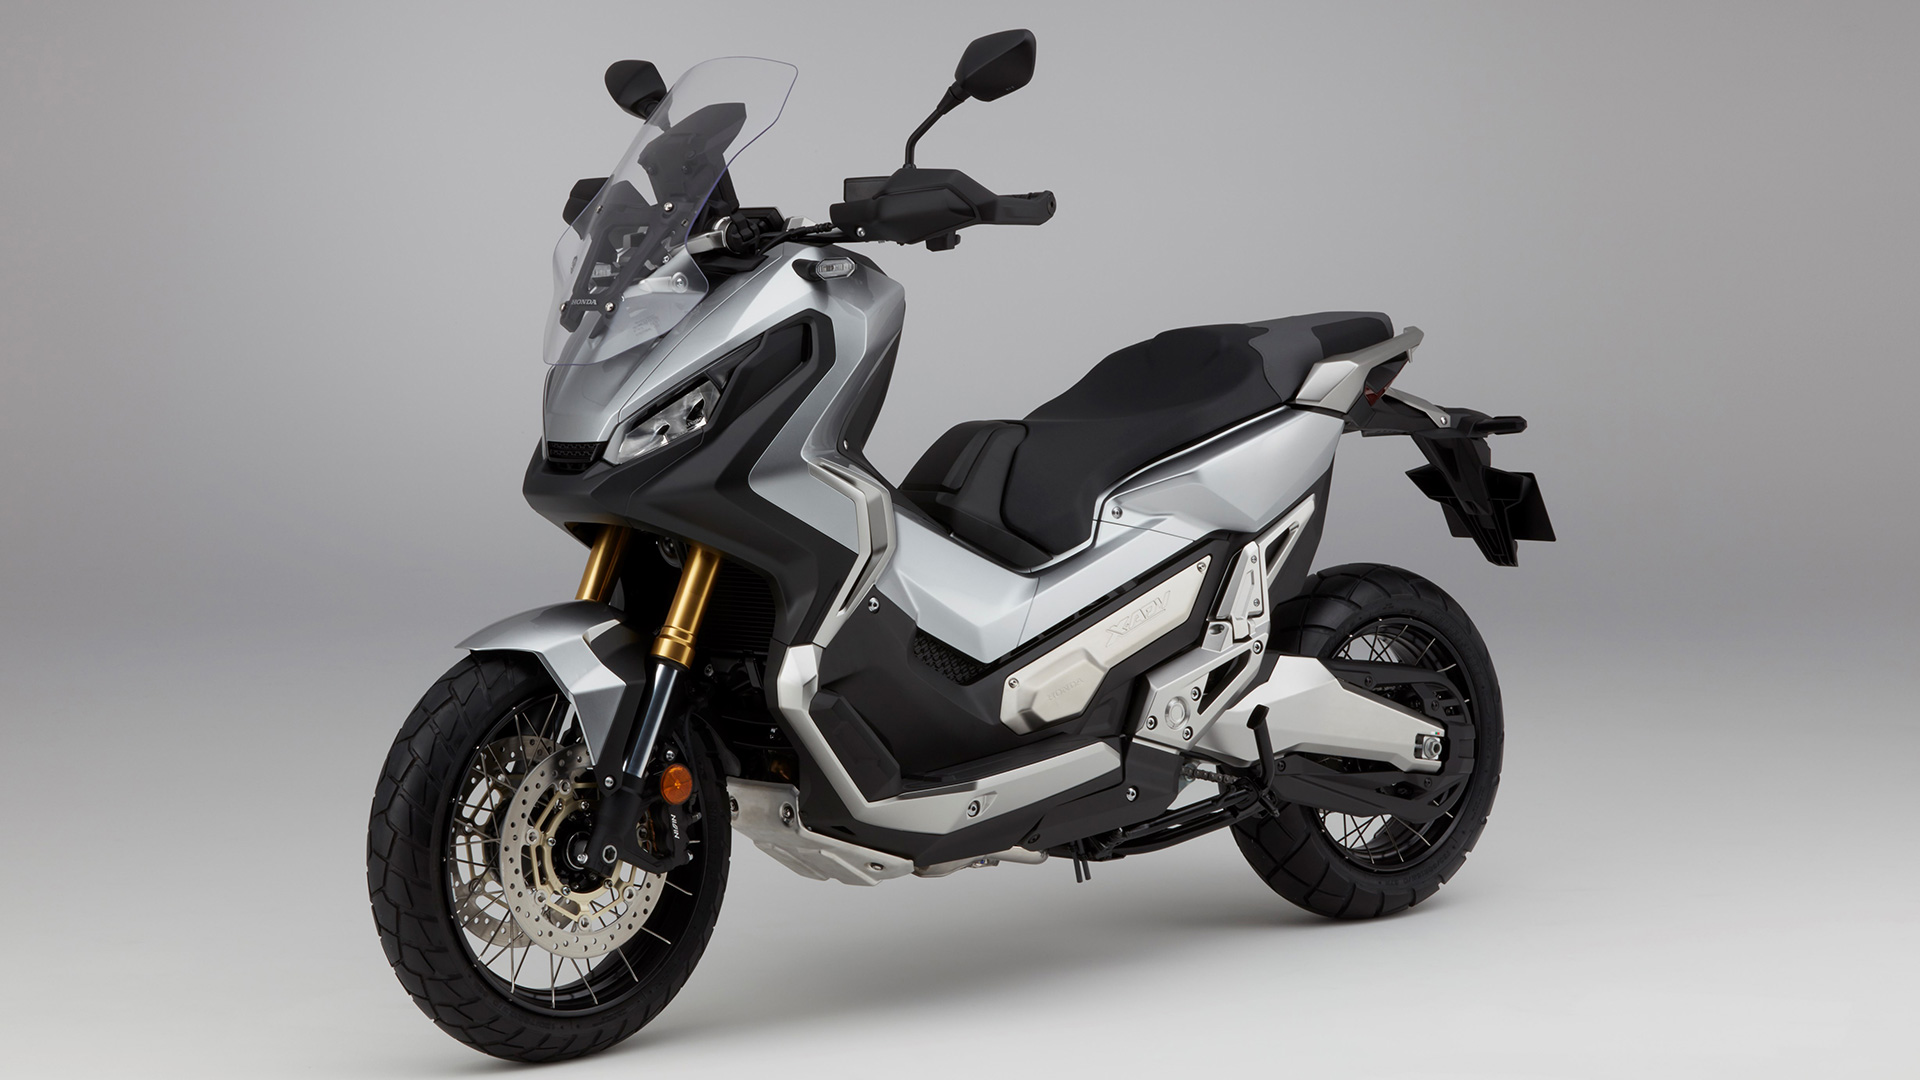 Honda X Adv 2018 Price Mileage Reviews Specification Gallery